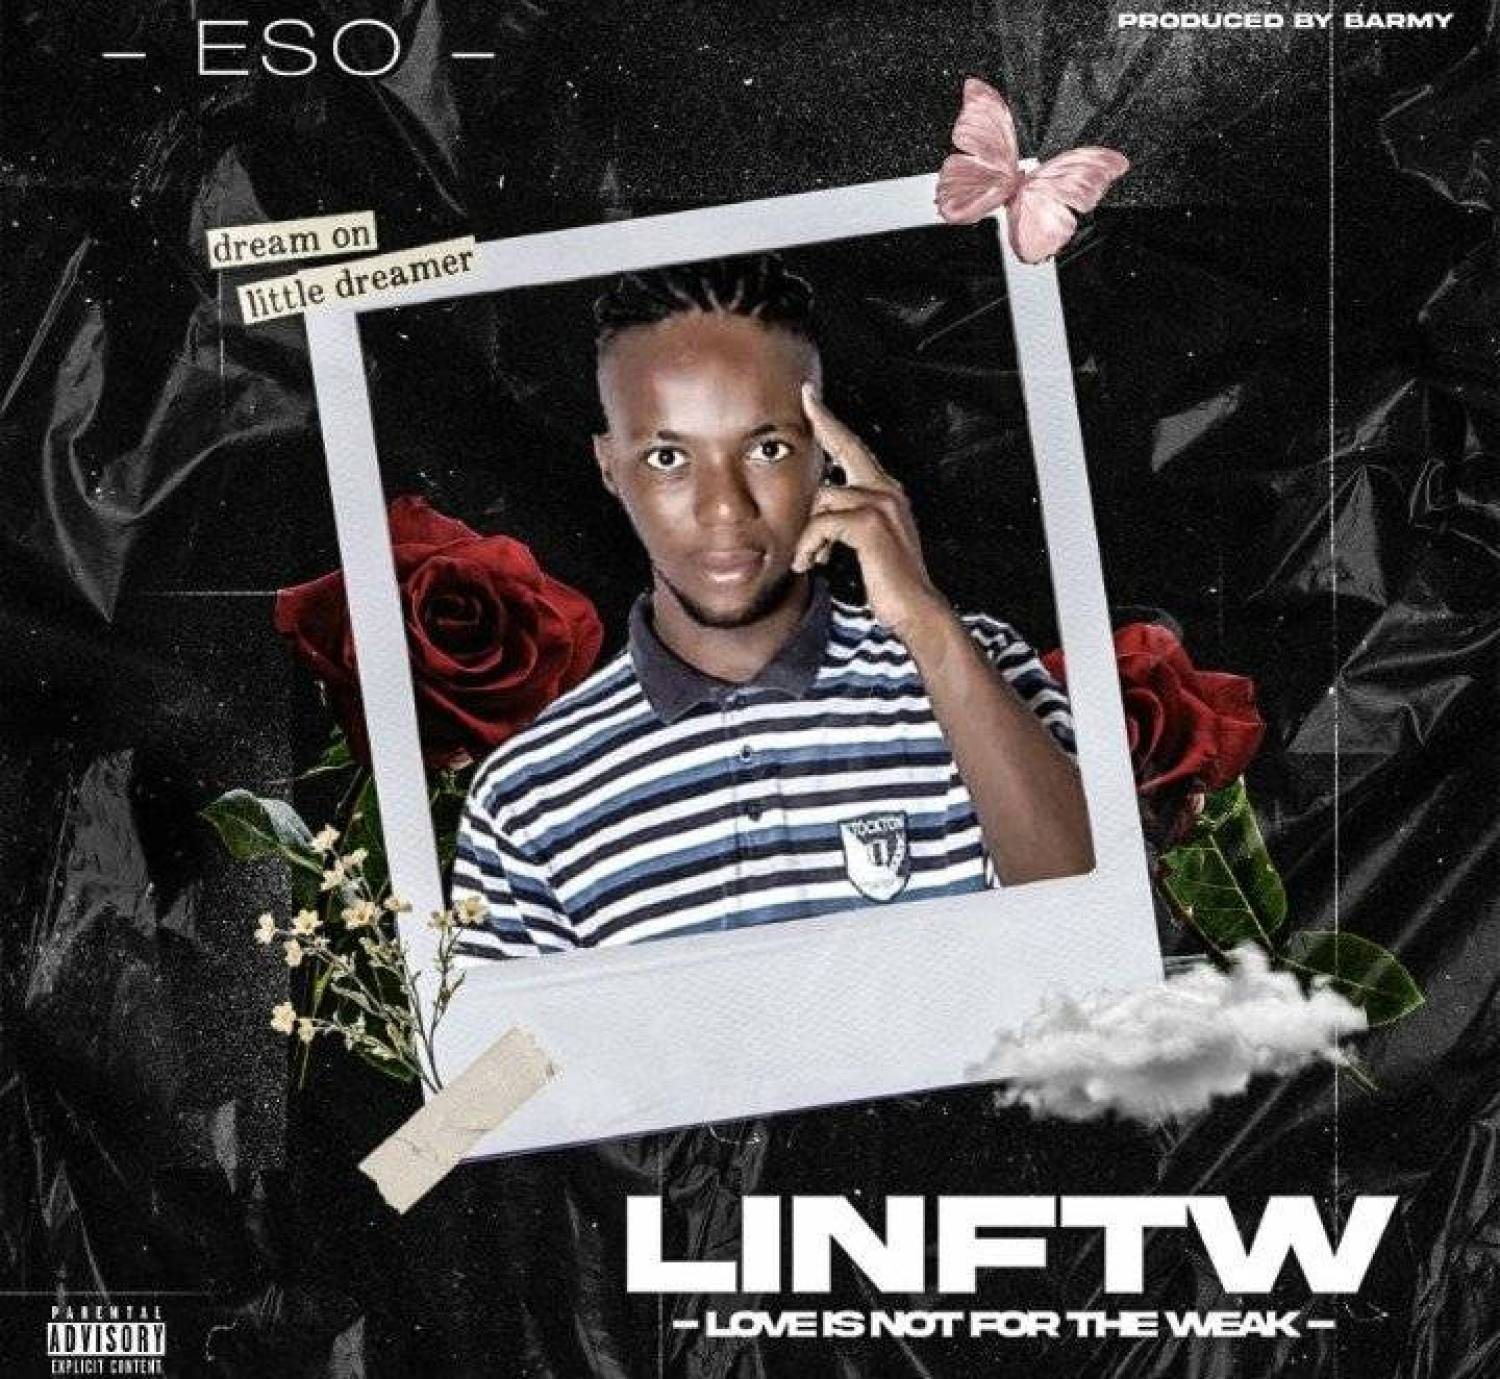 DOWNLOAD MP3: Eso – Love Is Never For The Weak AUDIO 320kbps